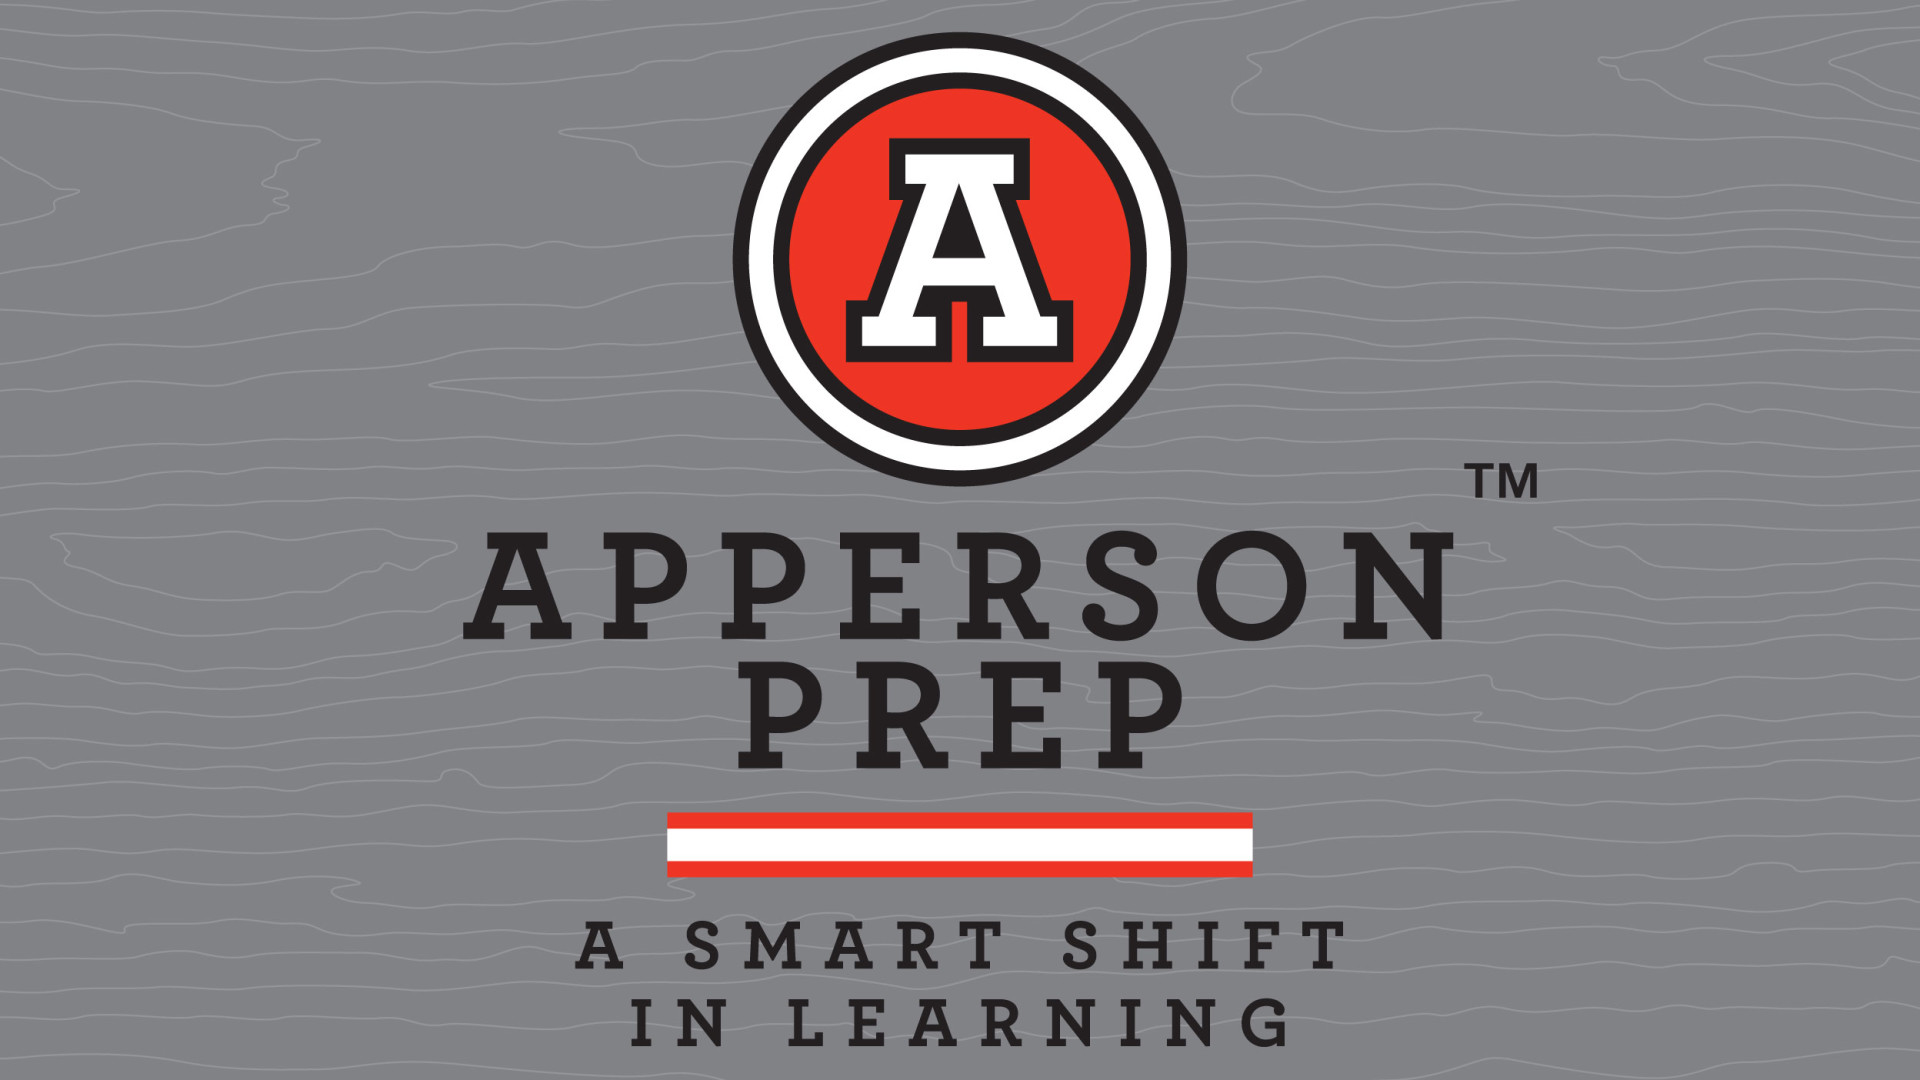 Apperson Prep Brand Mark Full View